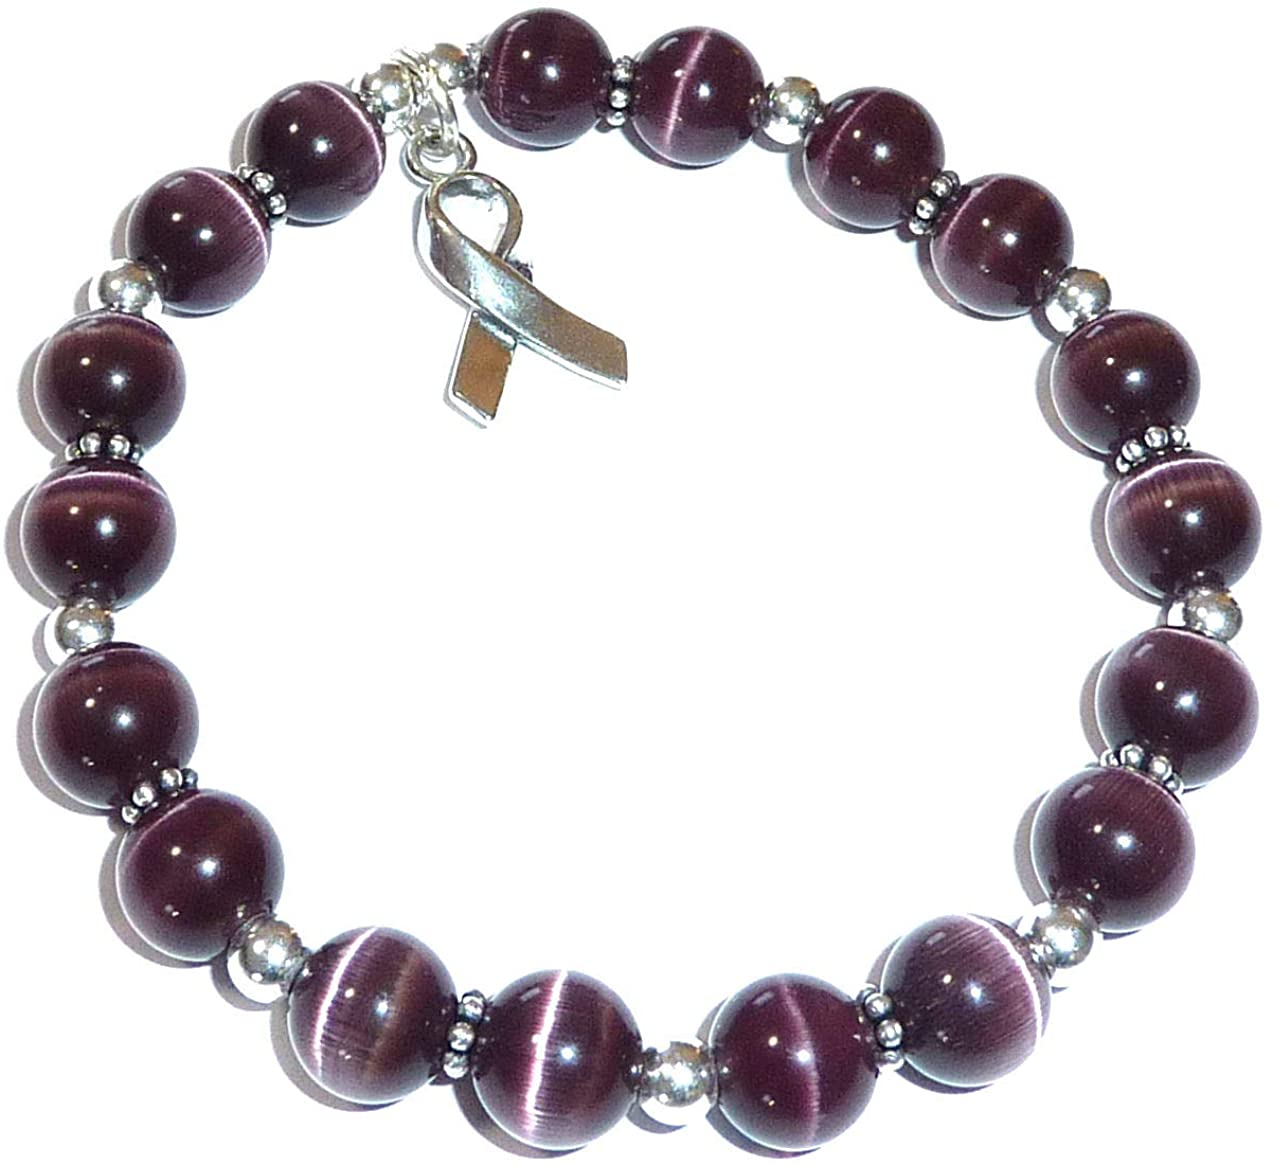 Hidden Hollow Beads Cancer Awareness Stretchy Bracelet.925 Sterling Silver, Strong Stretch Cord Fits Most Wrists